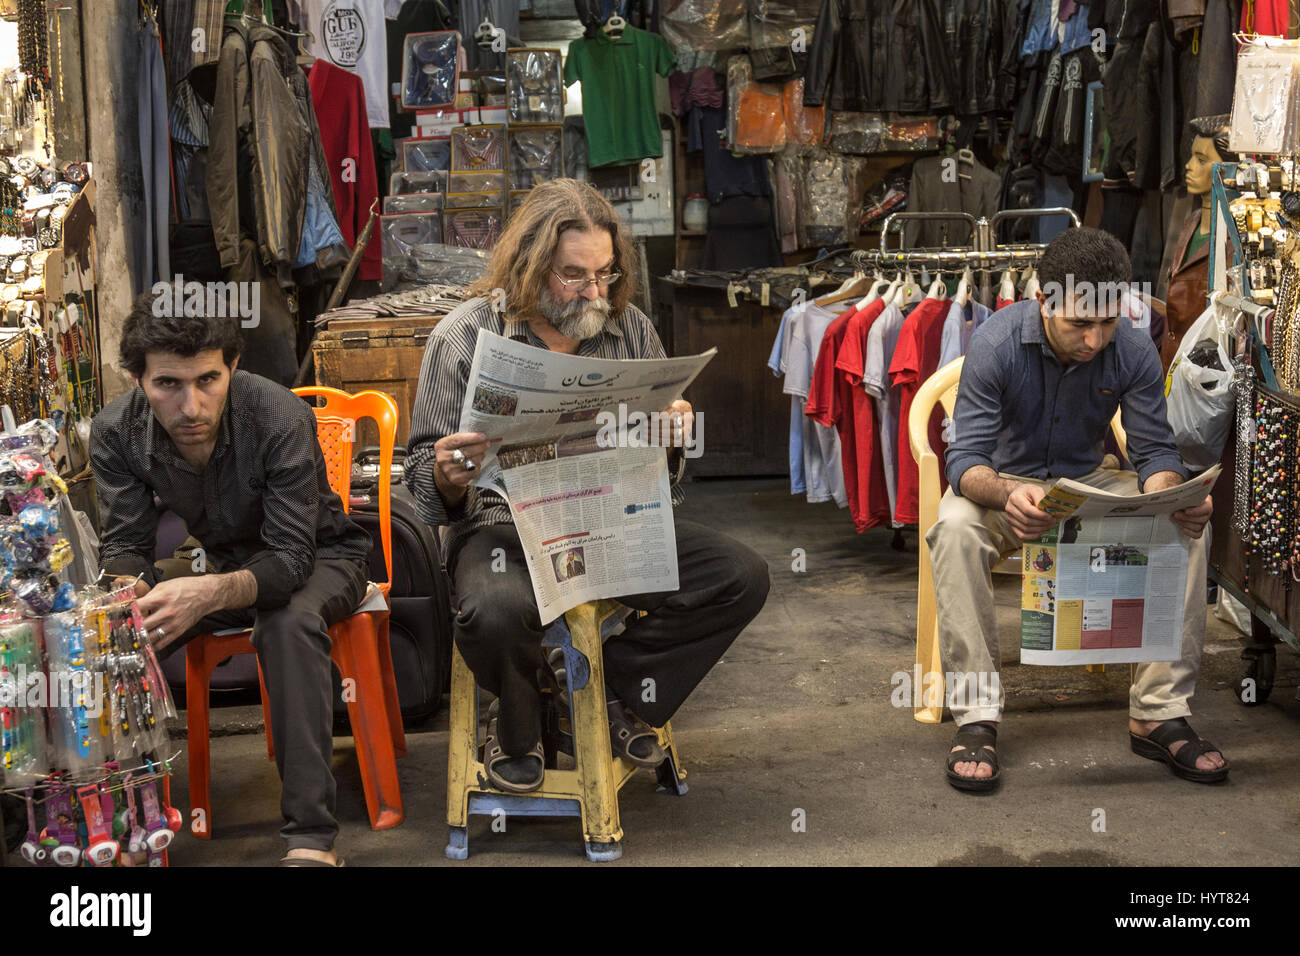 TEHRAN, IRAN - AUGUST 14, 2016: Iranian merchants reading newspapers in Farsi in Tehran main bazaar  Picture of Stock Photo